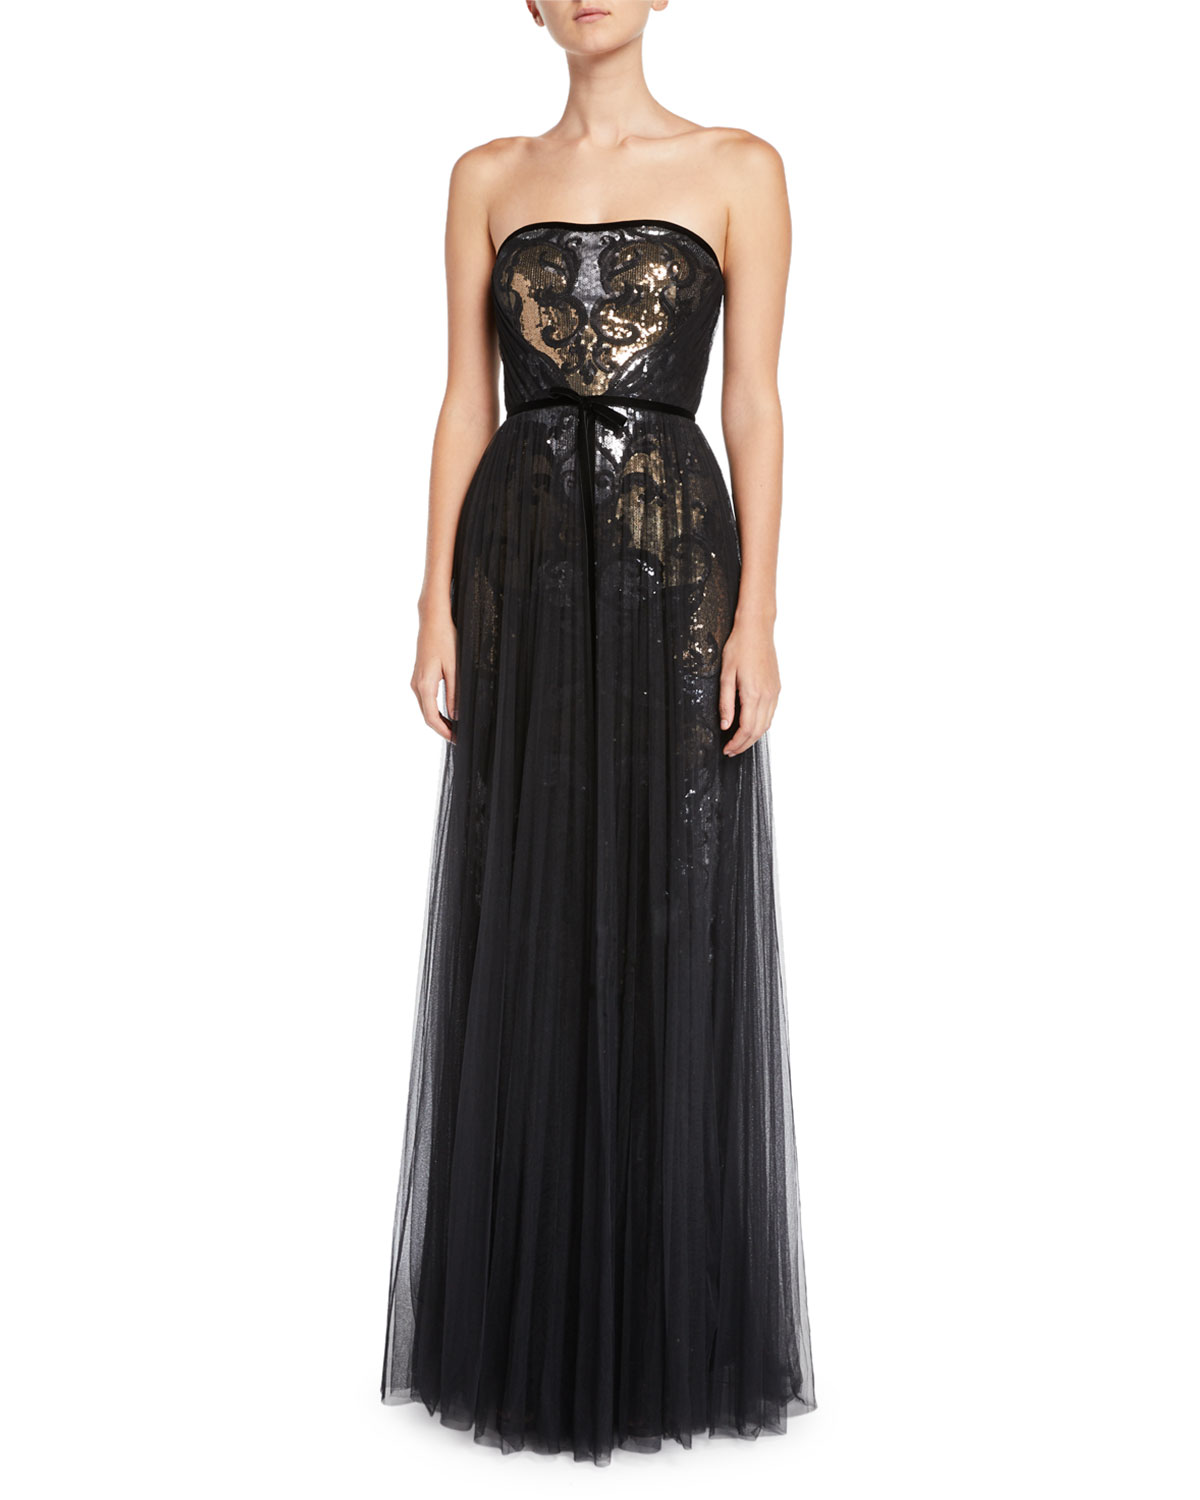 99d1948f Marchesa Notte Sequin & Tulle Pleated Strapless Gown   Neiman Marcus